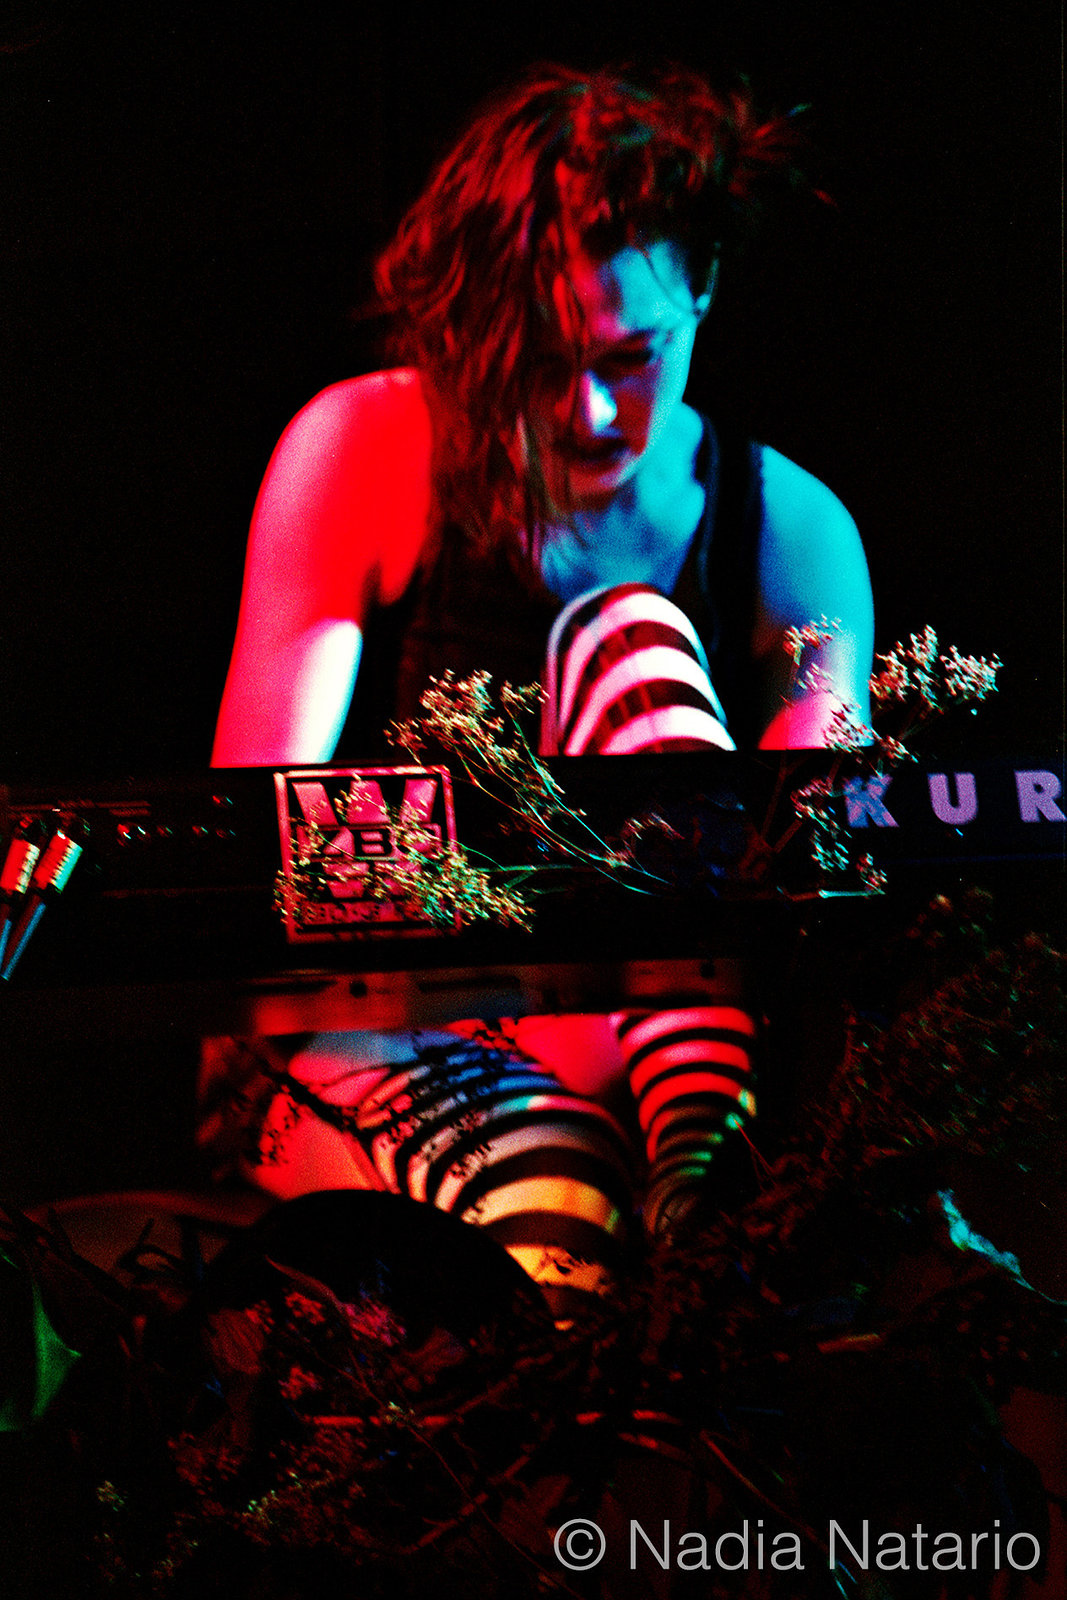 The Dresden Dolls at Cargo, London 2004